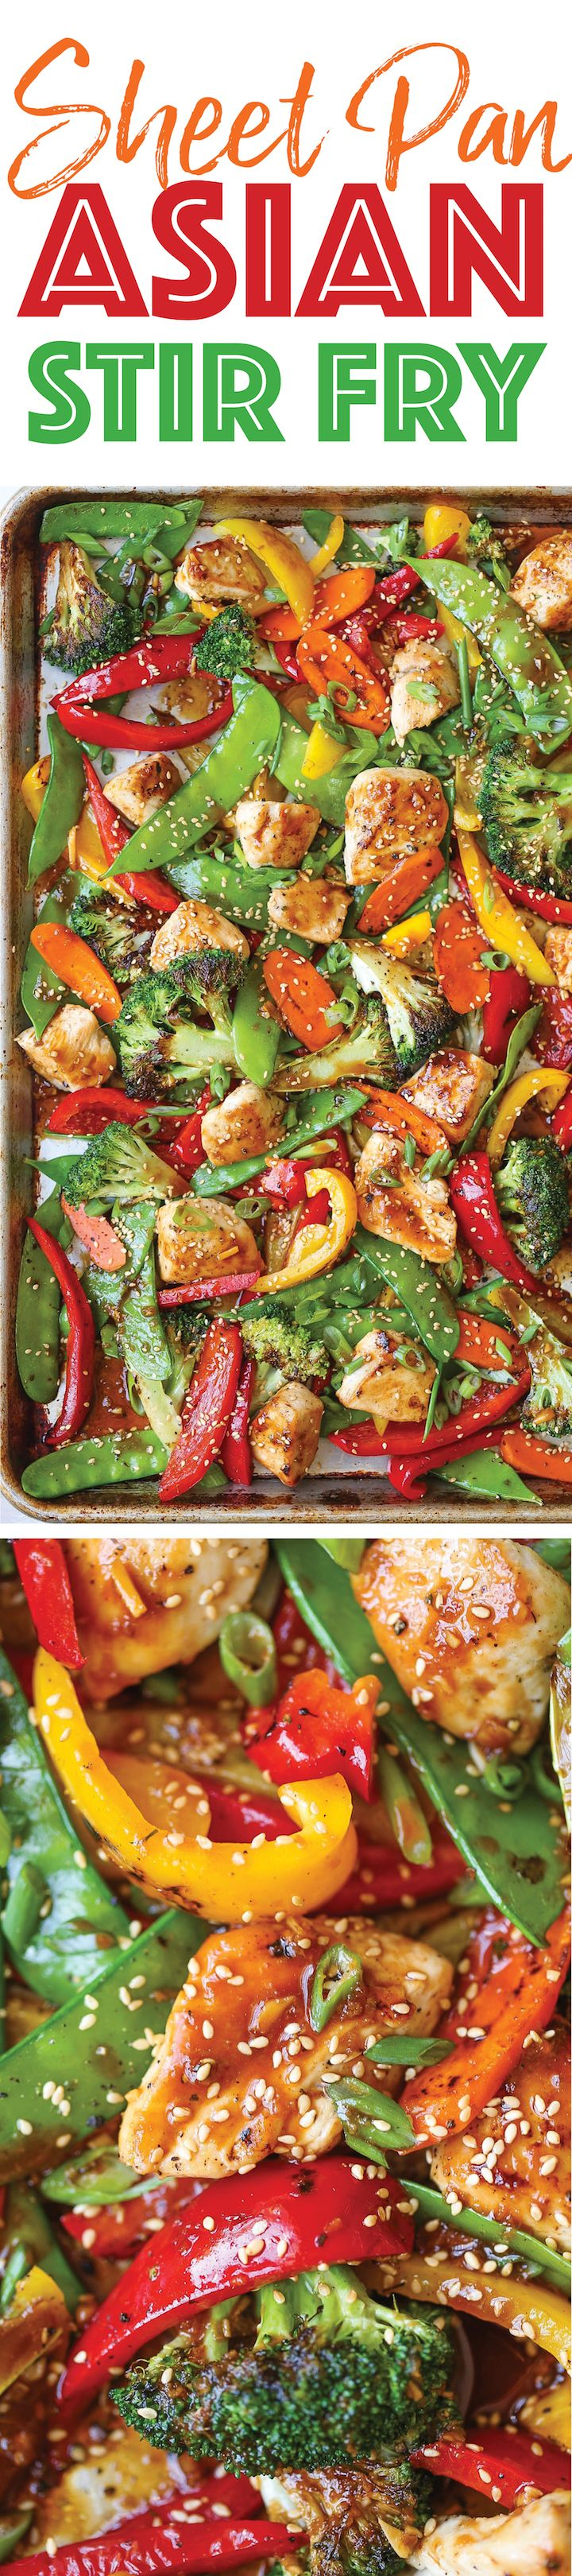 Sheet Pan Asian Stir Fry